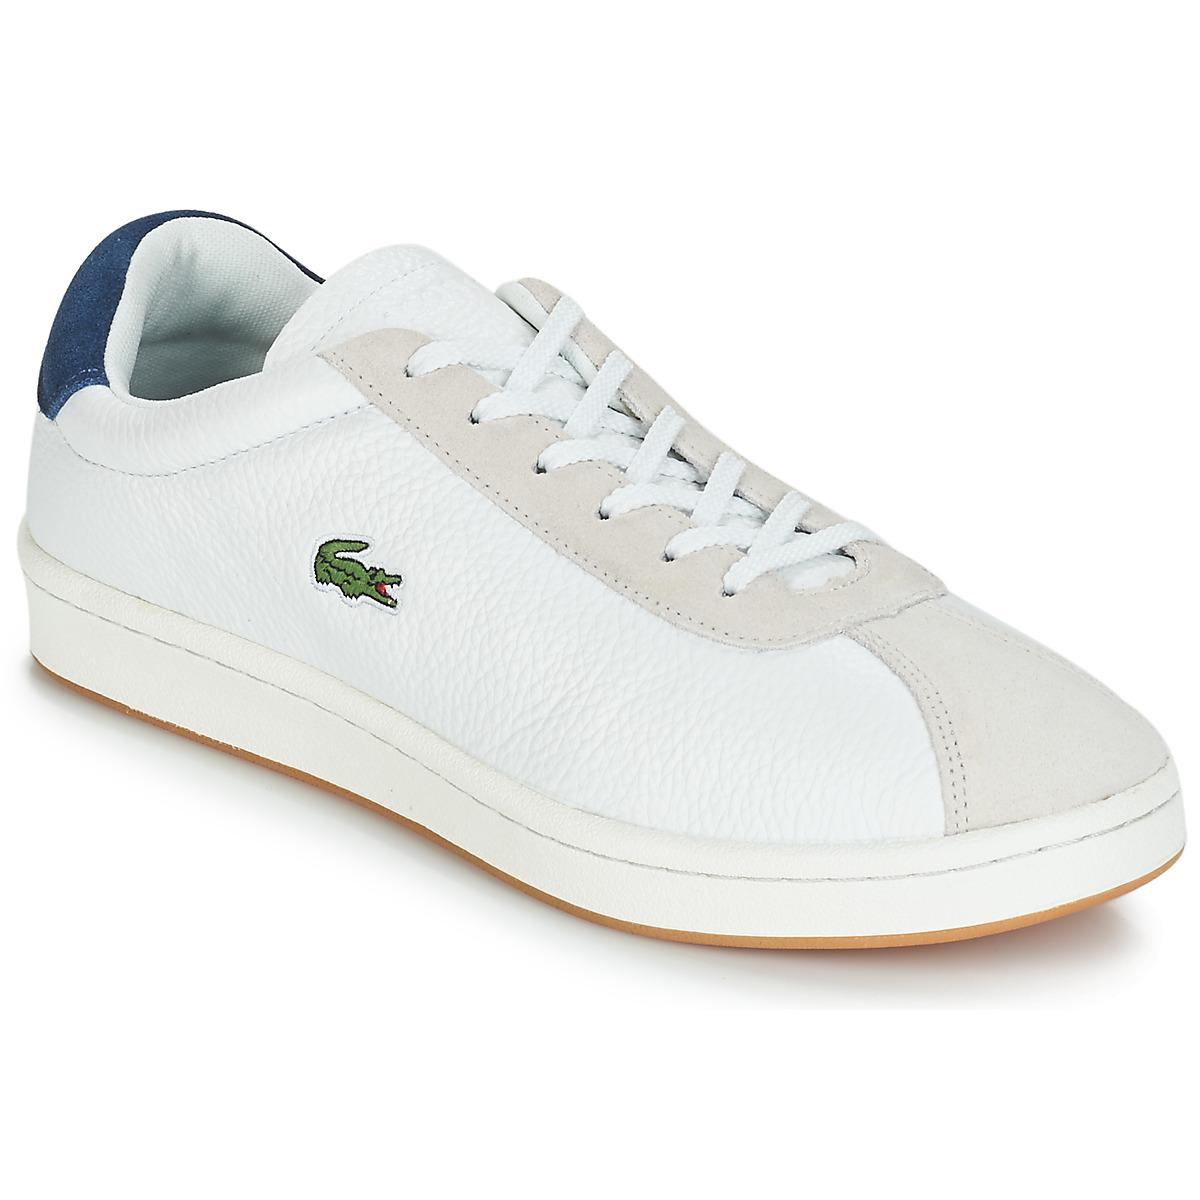 62fc2c1f2 Lacoste Masters 119 3 Shoes (trainers) in White for Men - Lyst